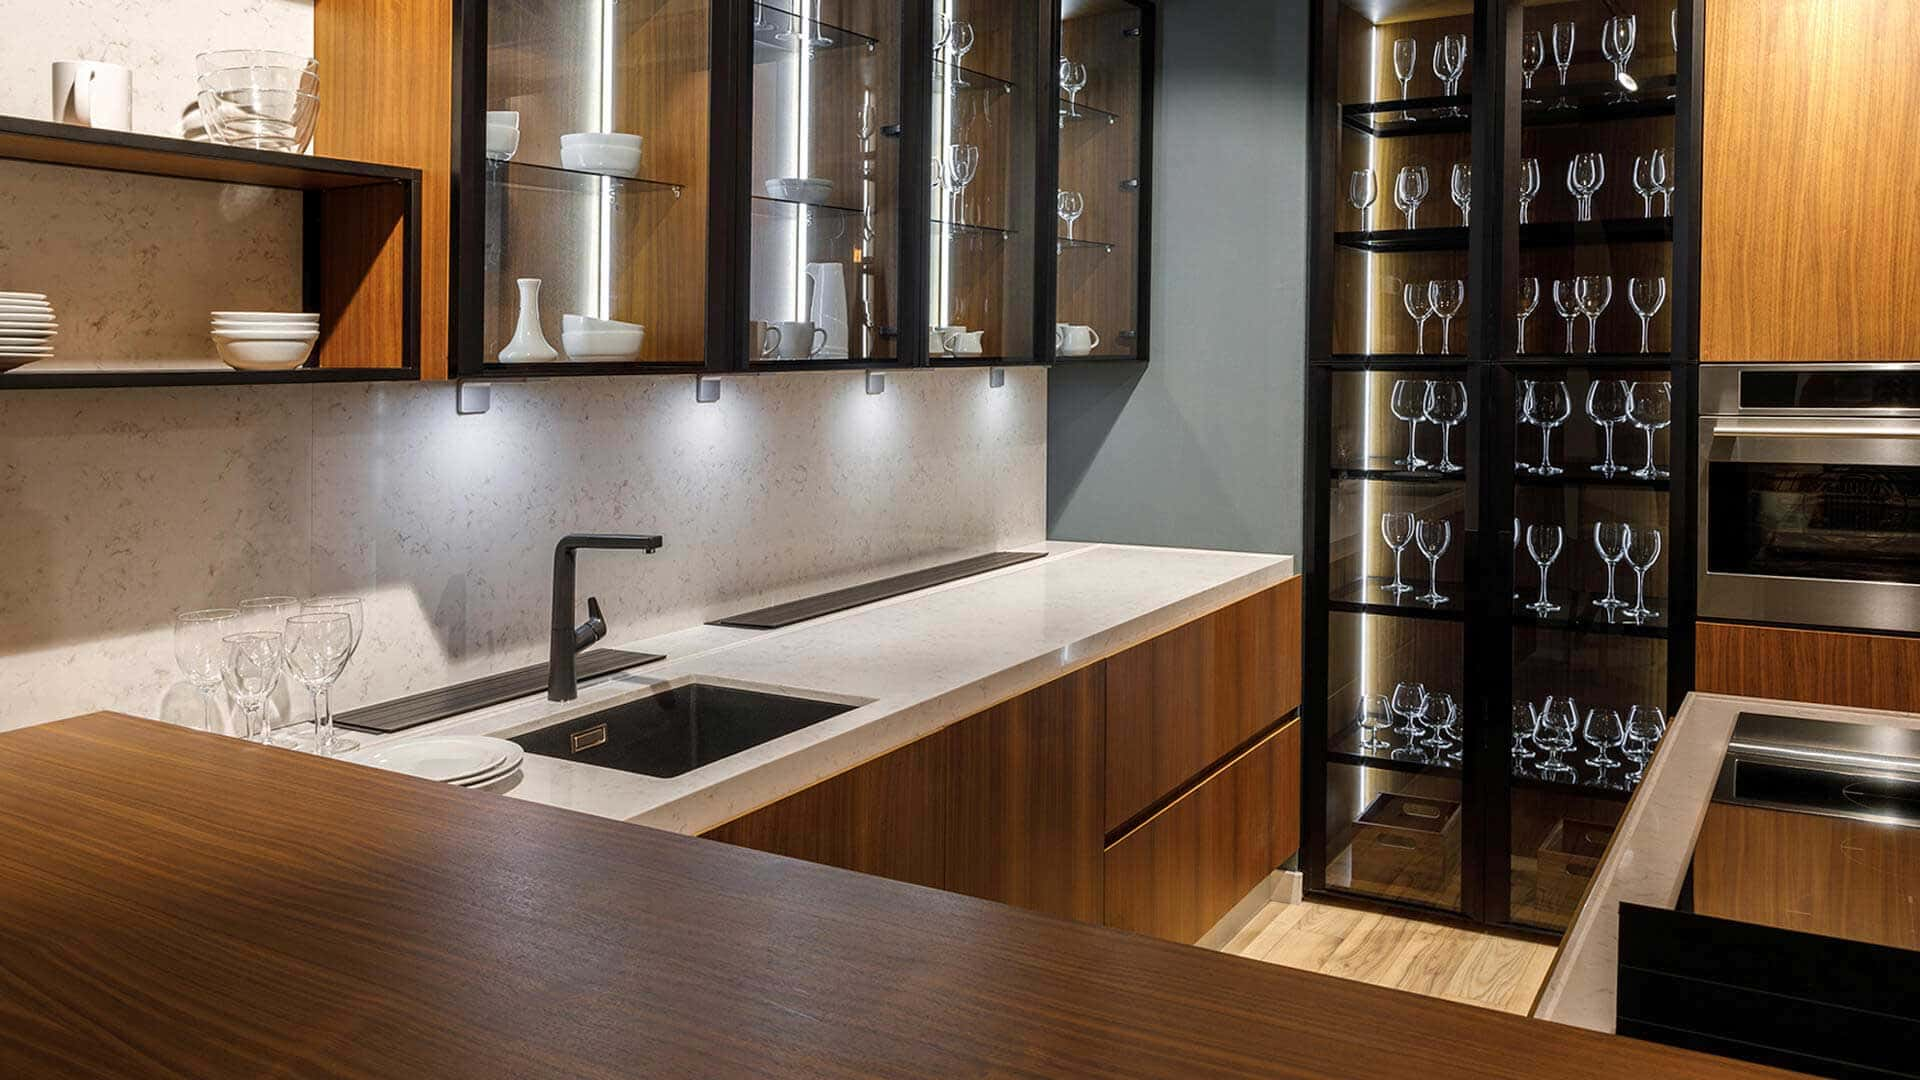 We make designing your dream kitchen easy and affordable